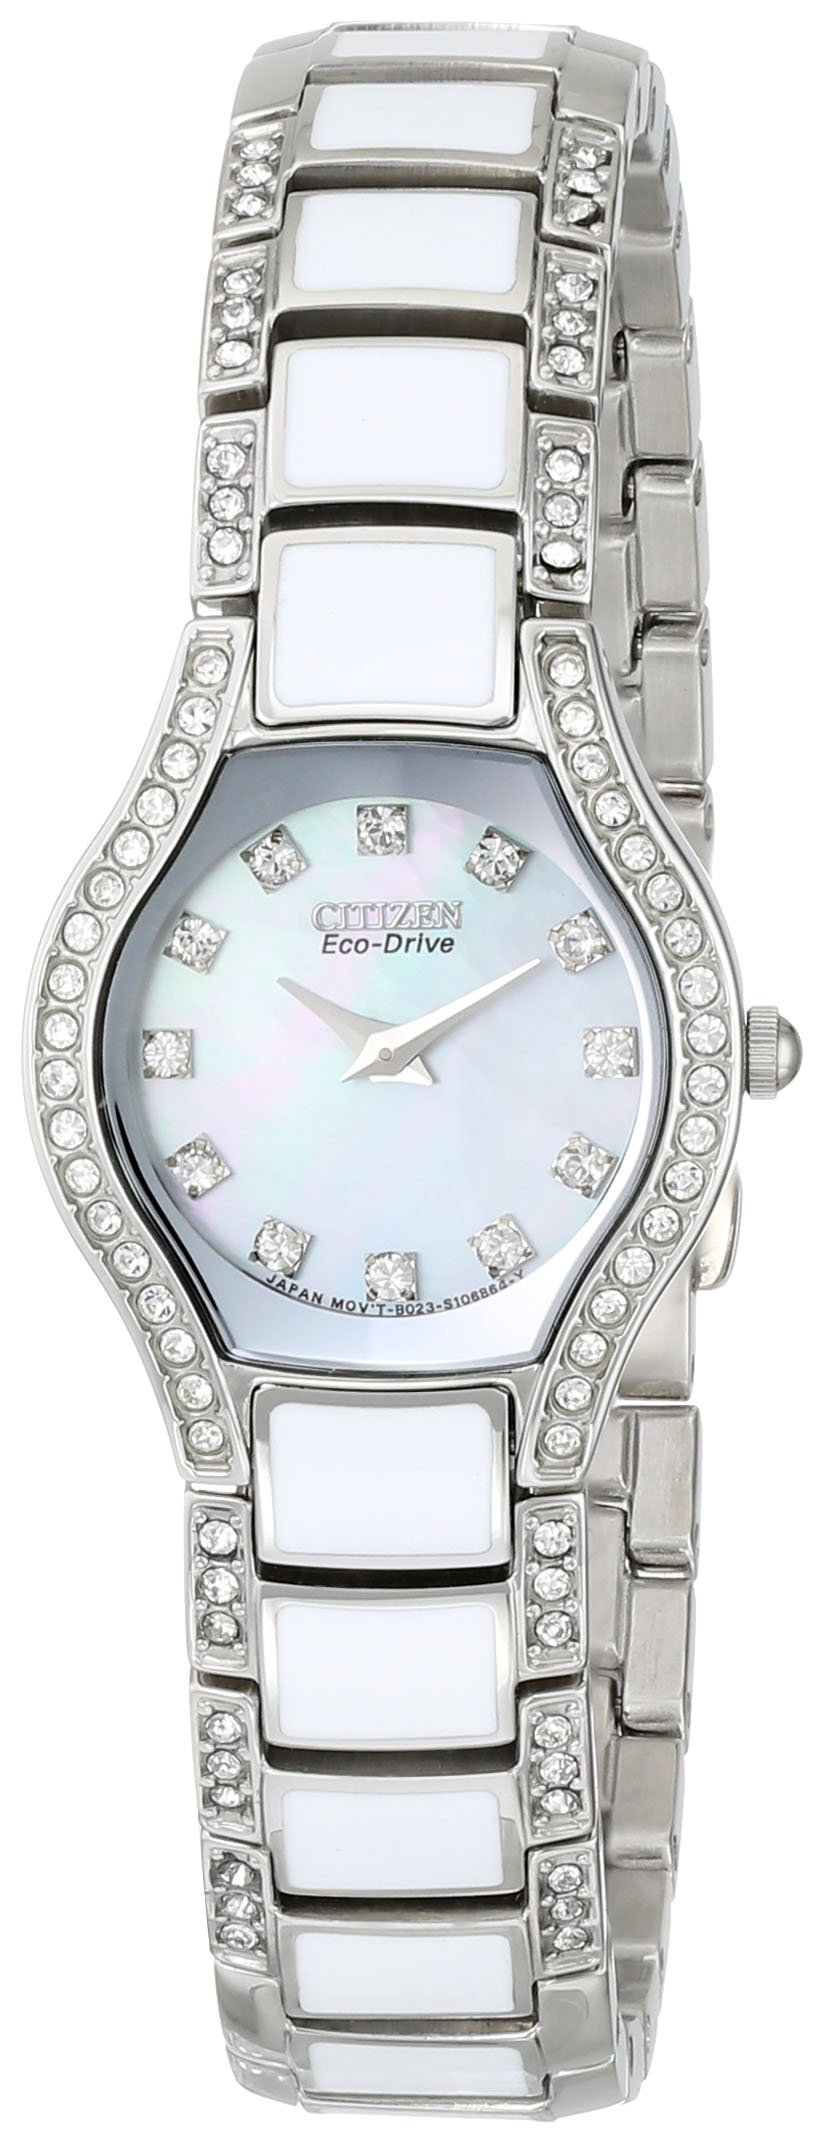 Citizen Women's EW9870-81D Normandie Eco Drive Watch